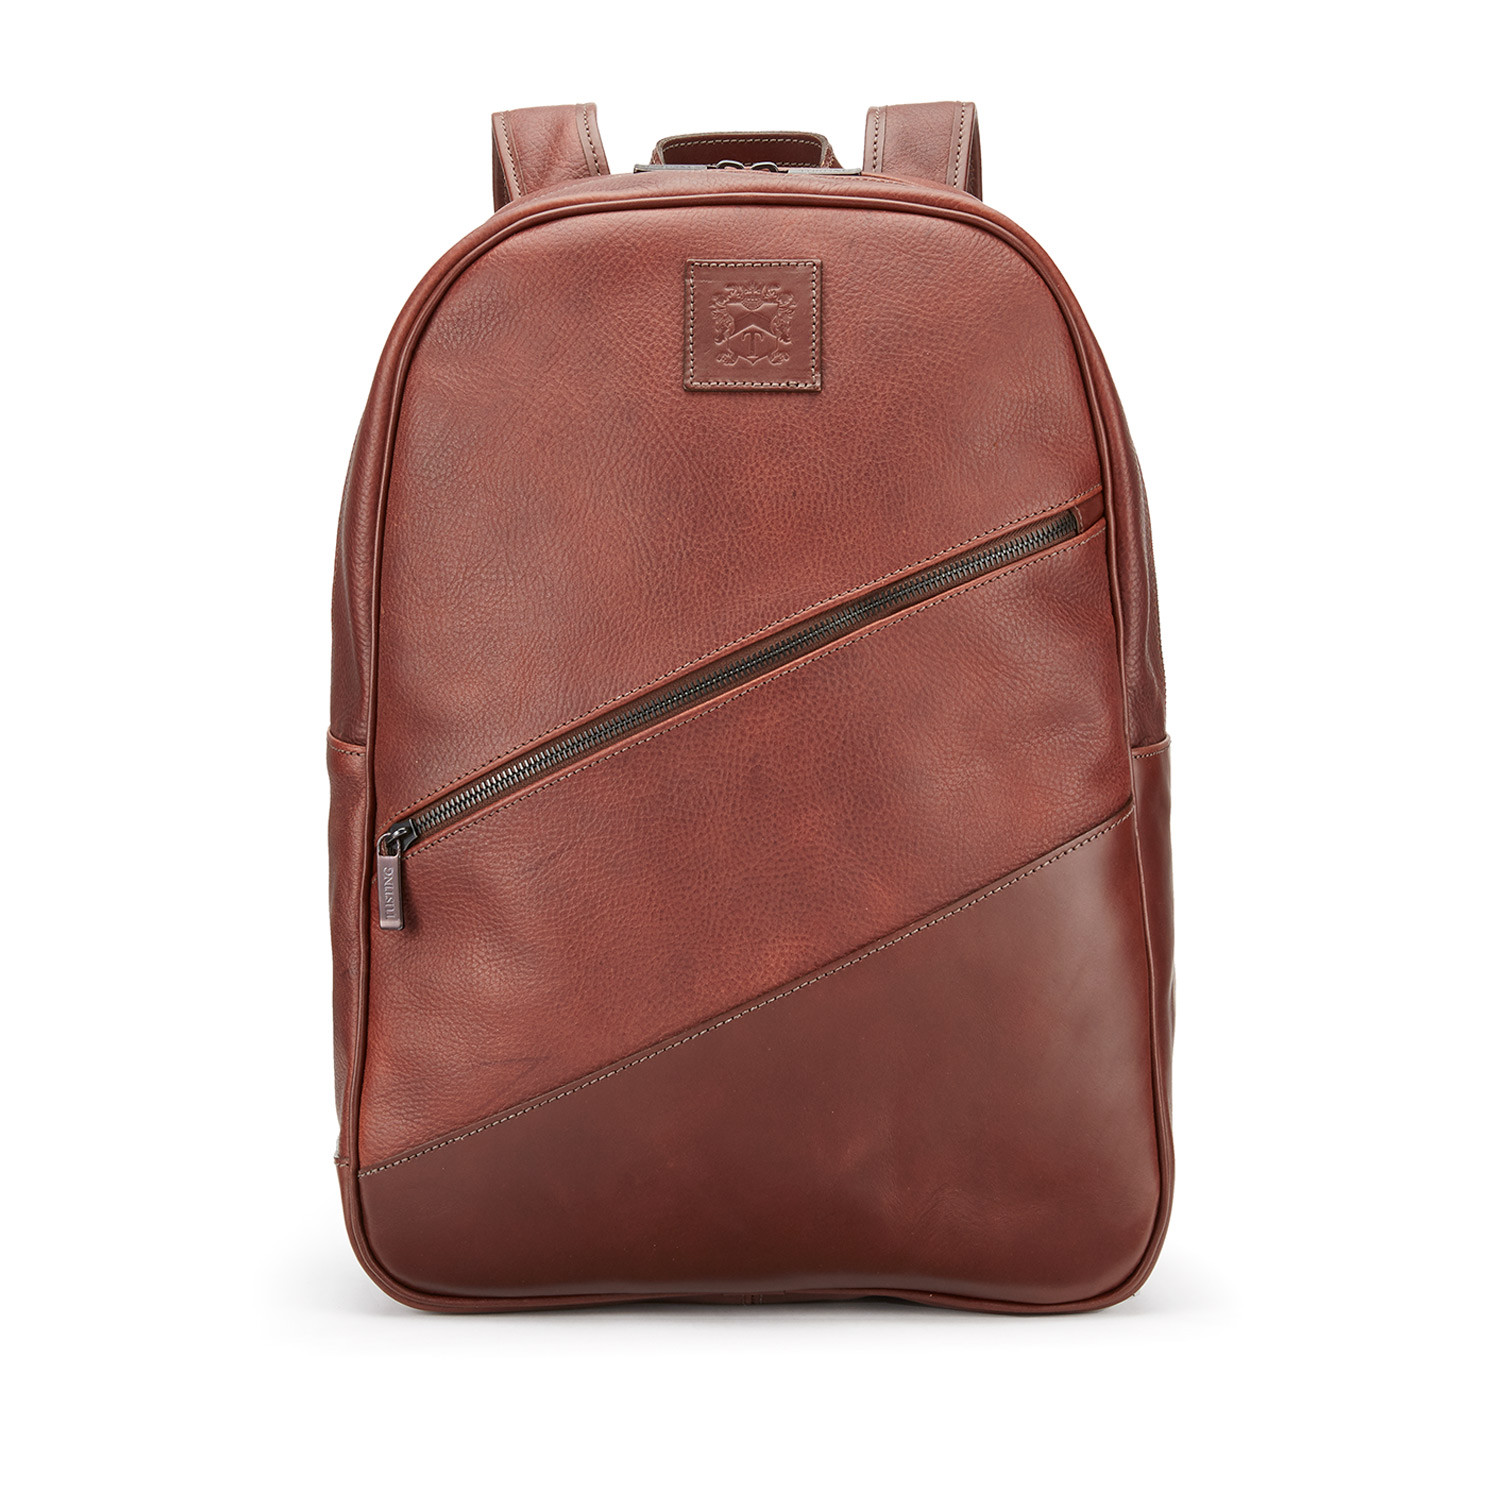 The Tusting Clifton Leather Backpack Rucksack